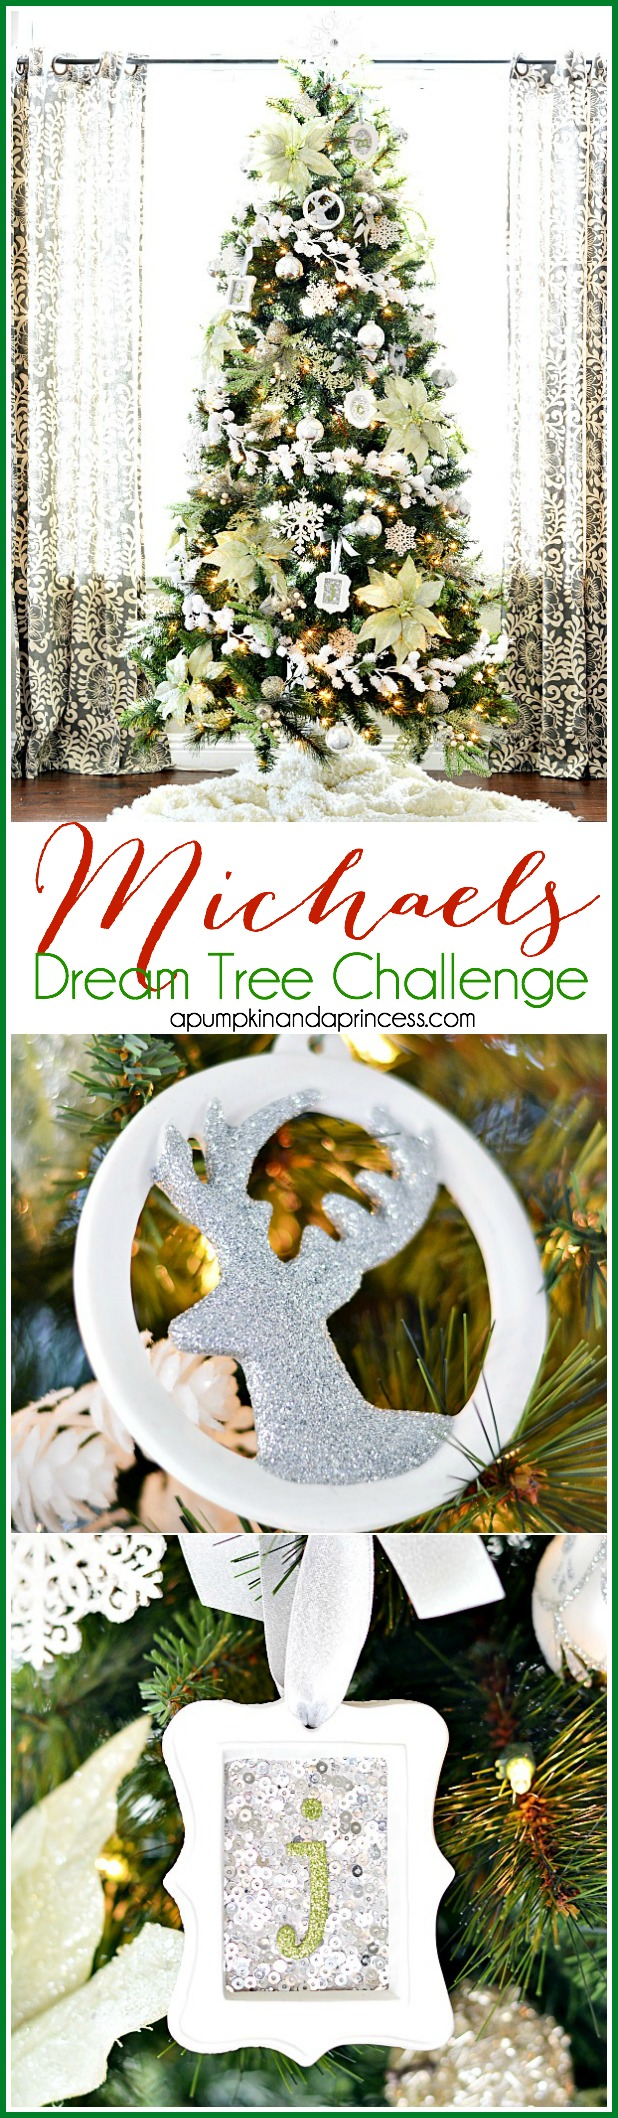 Michaels Dream Tree Challenge - Winter Wonderland Tree